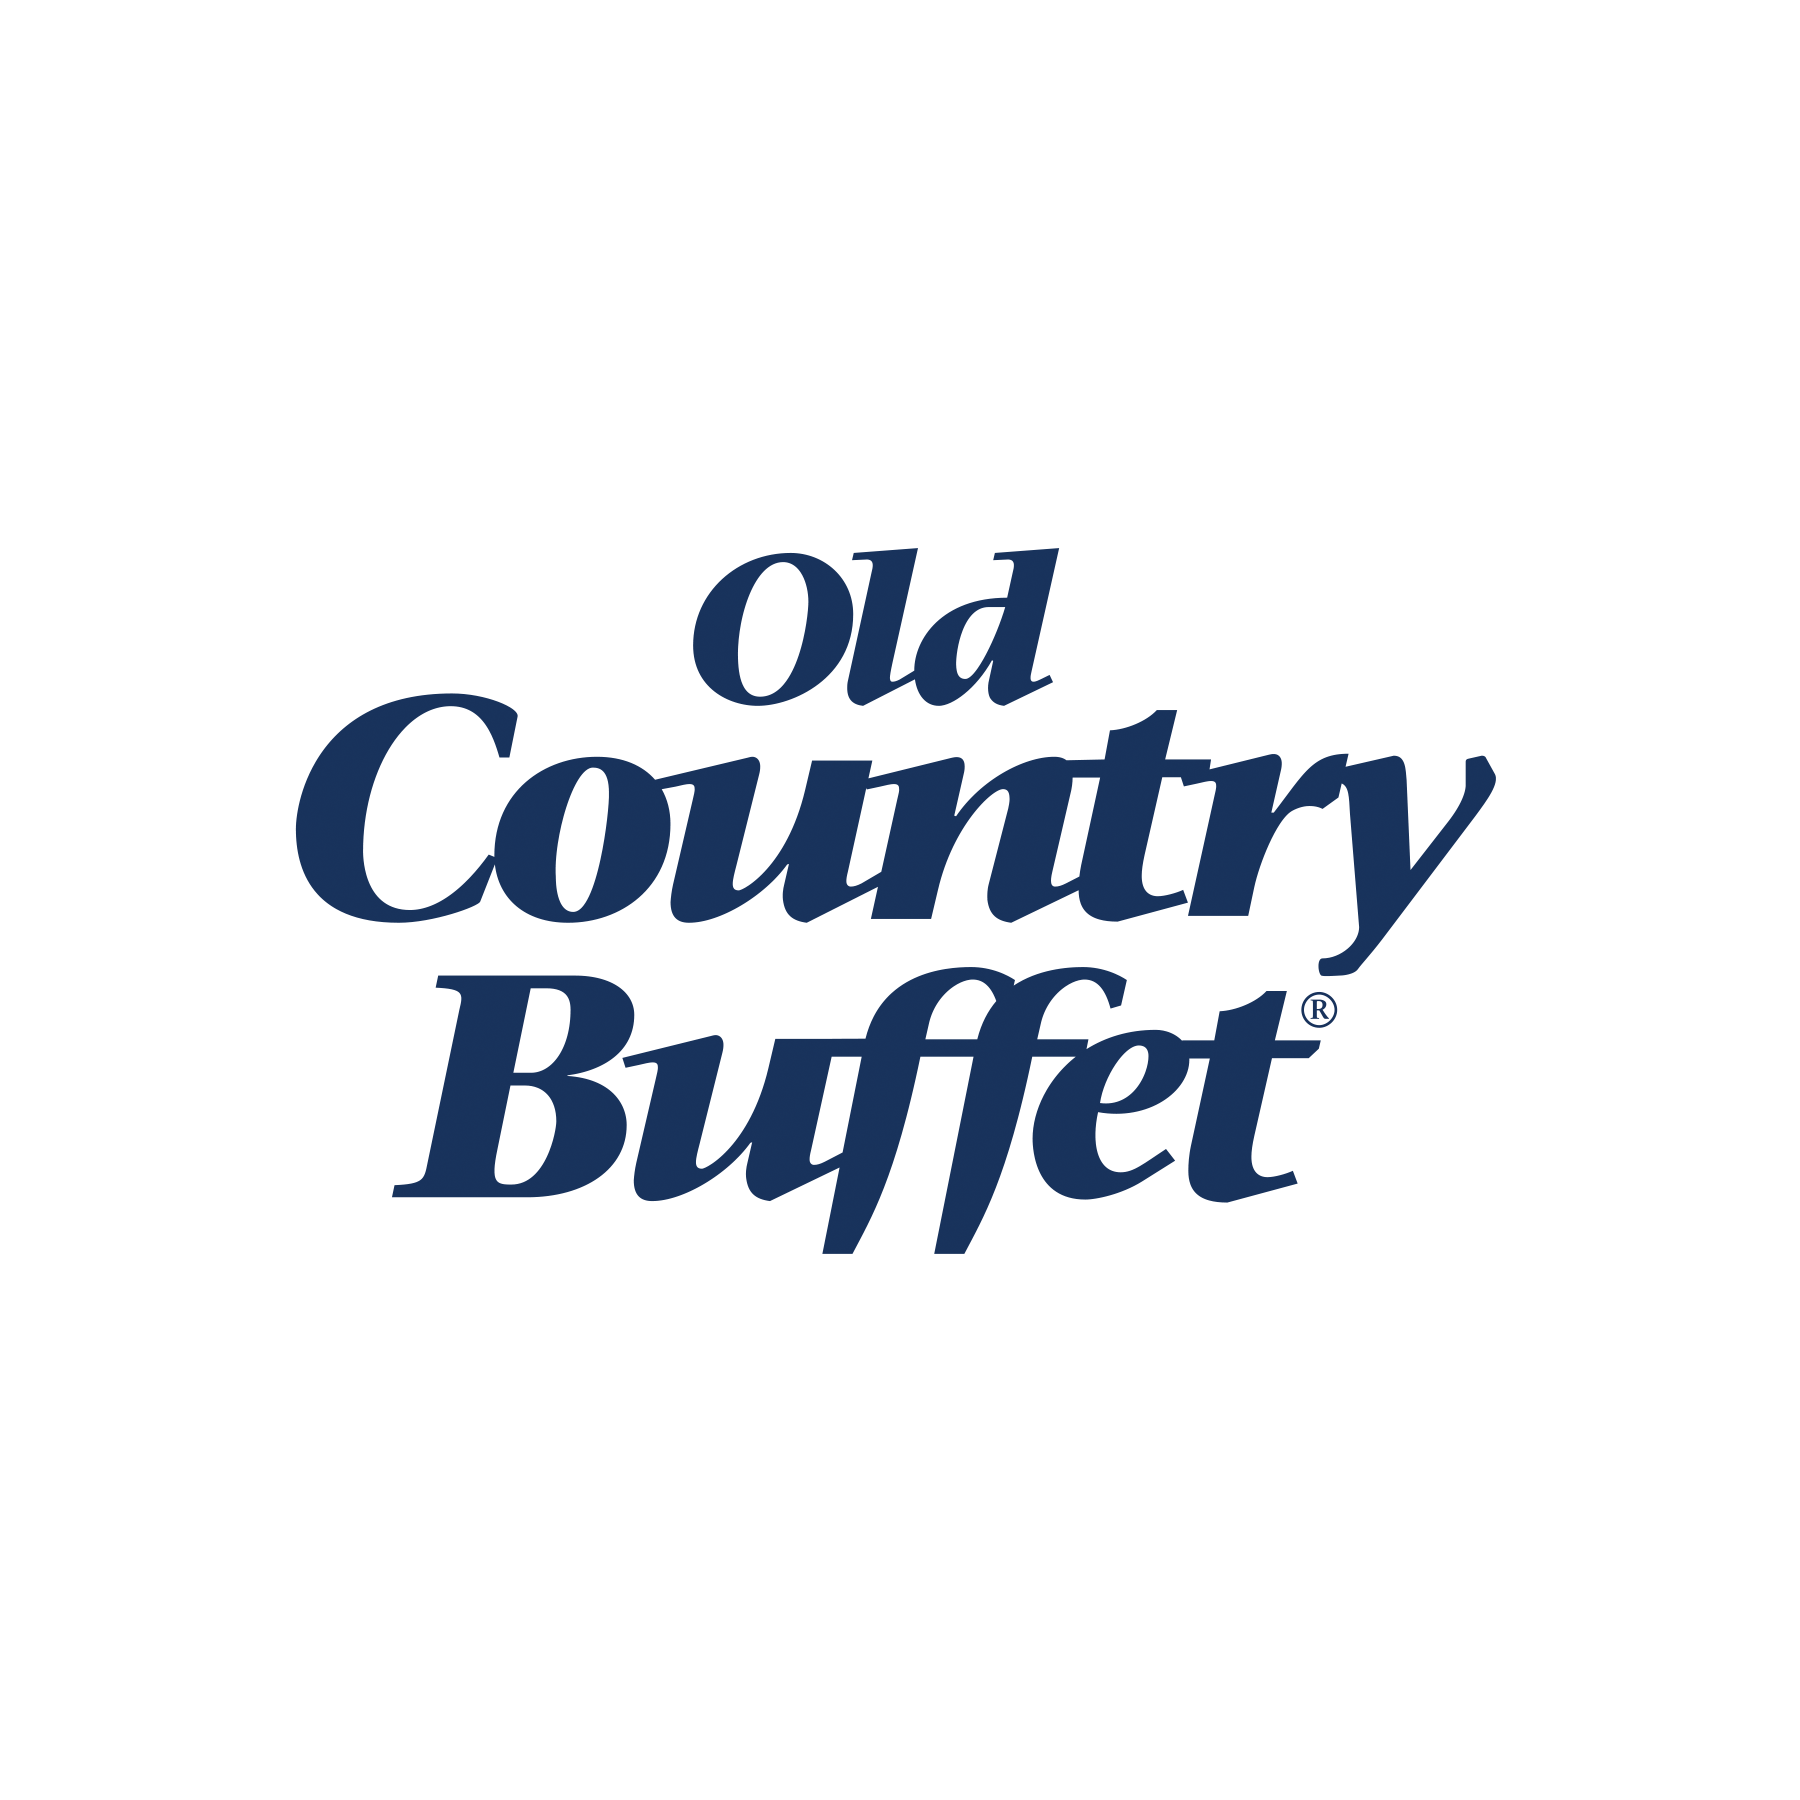 Official logo for Old Country Buffet.